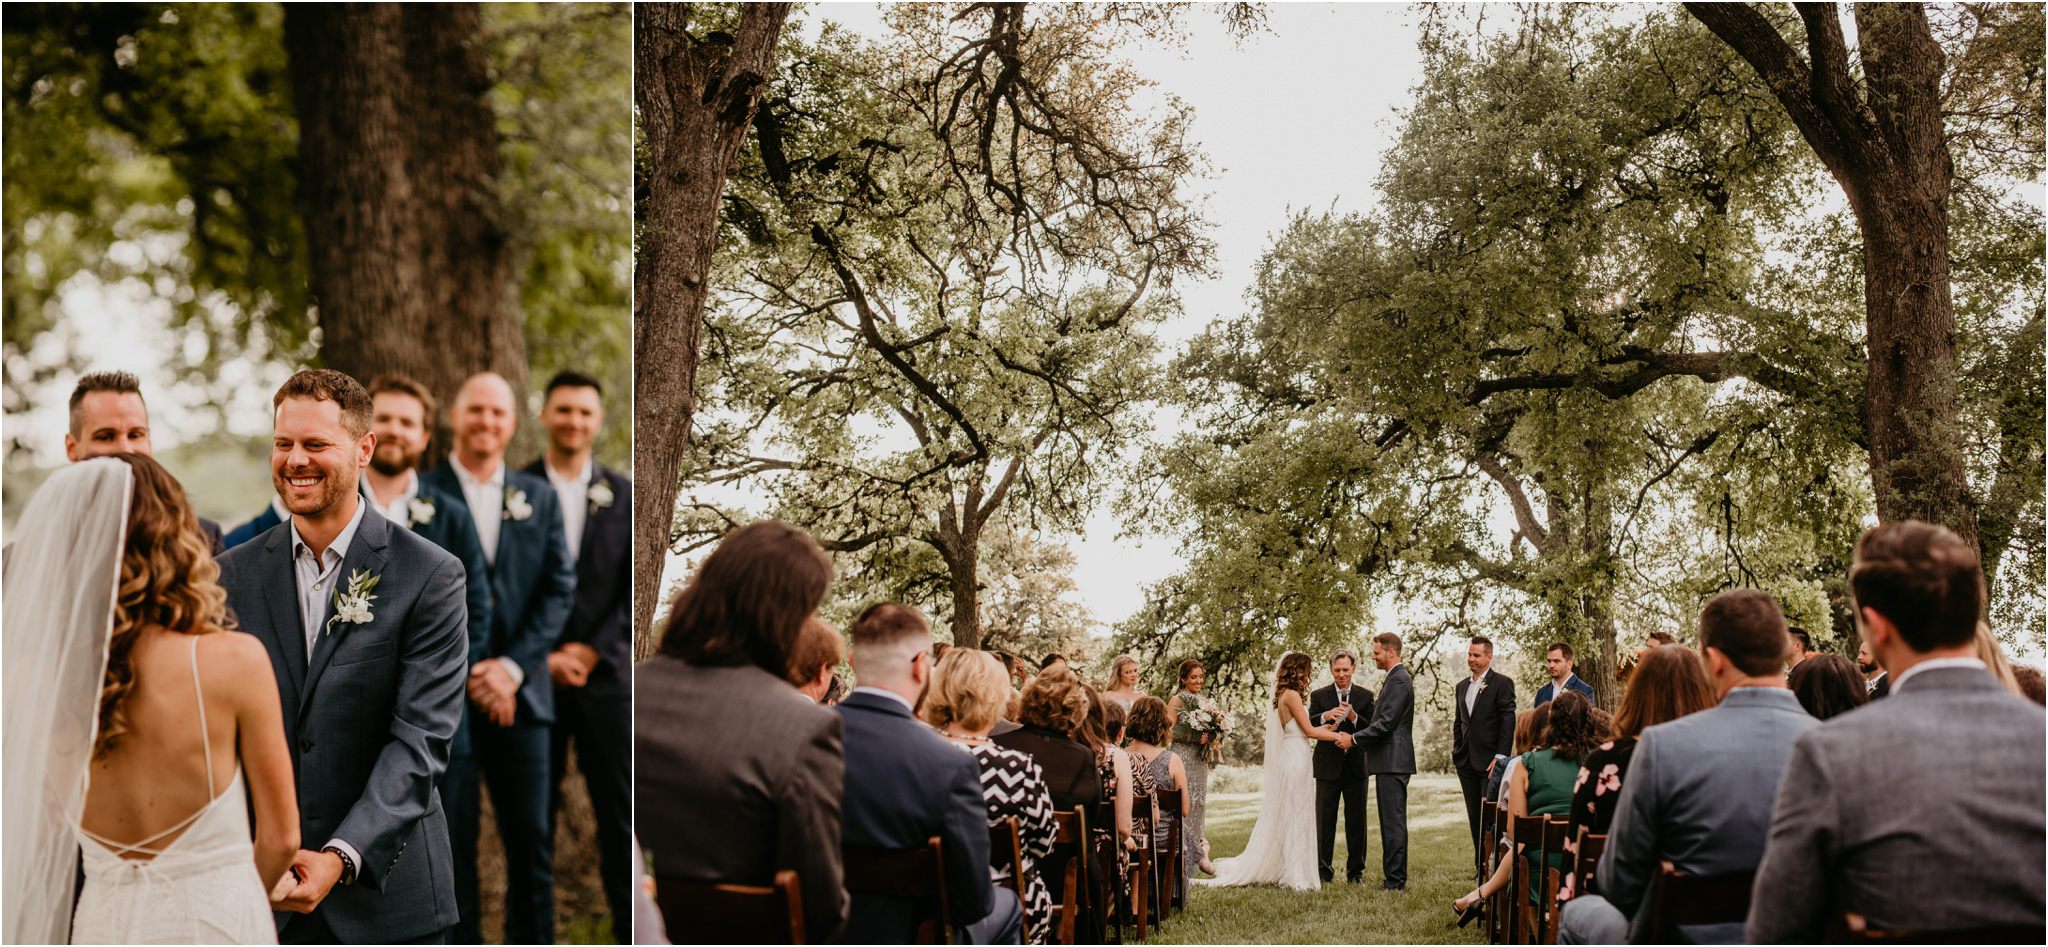 jillian-and-scott-pecan-springs-ranch-texas-and-washington-wedding-photographer-071.jpg